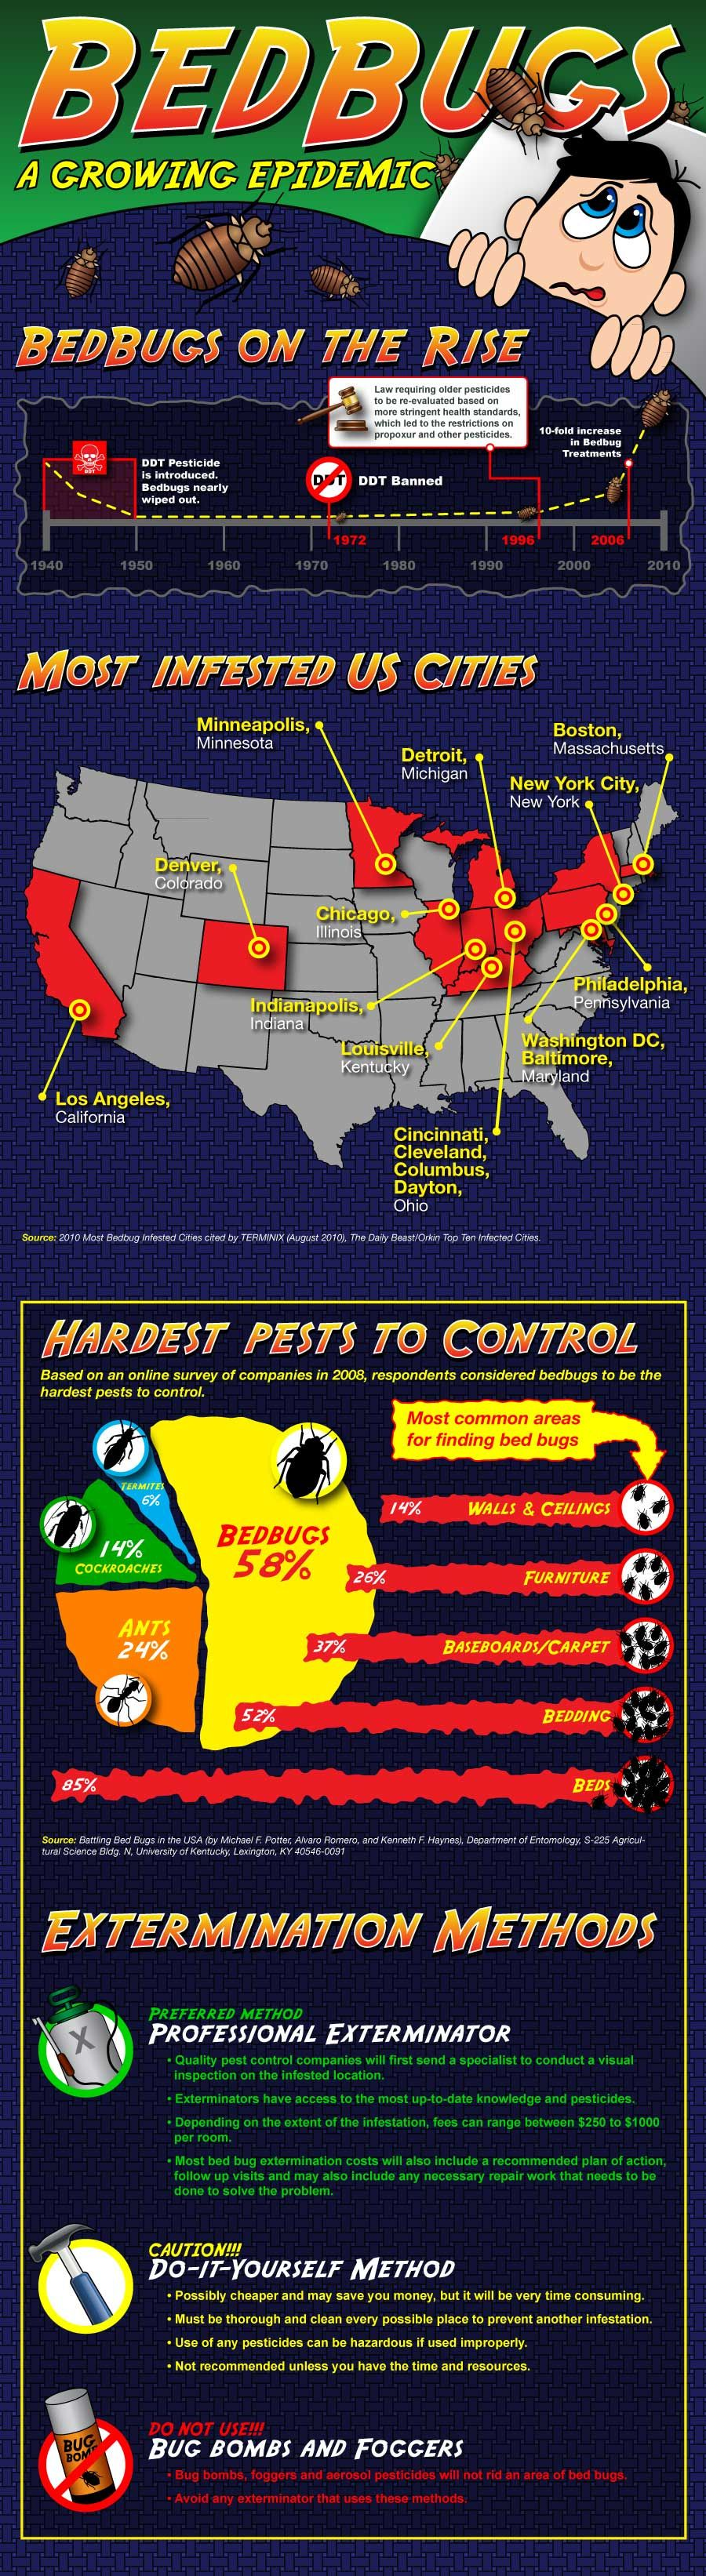 Bed Bug epidemic infographic showing which cities are most